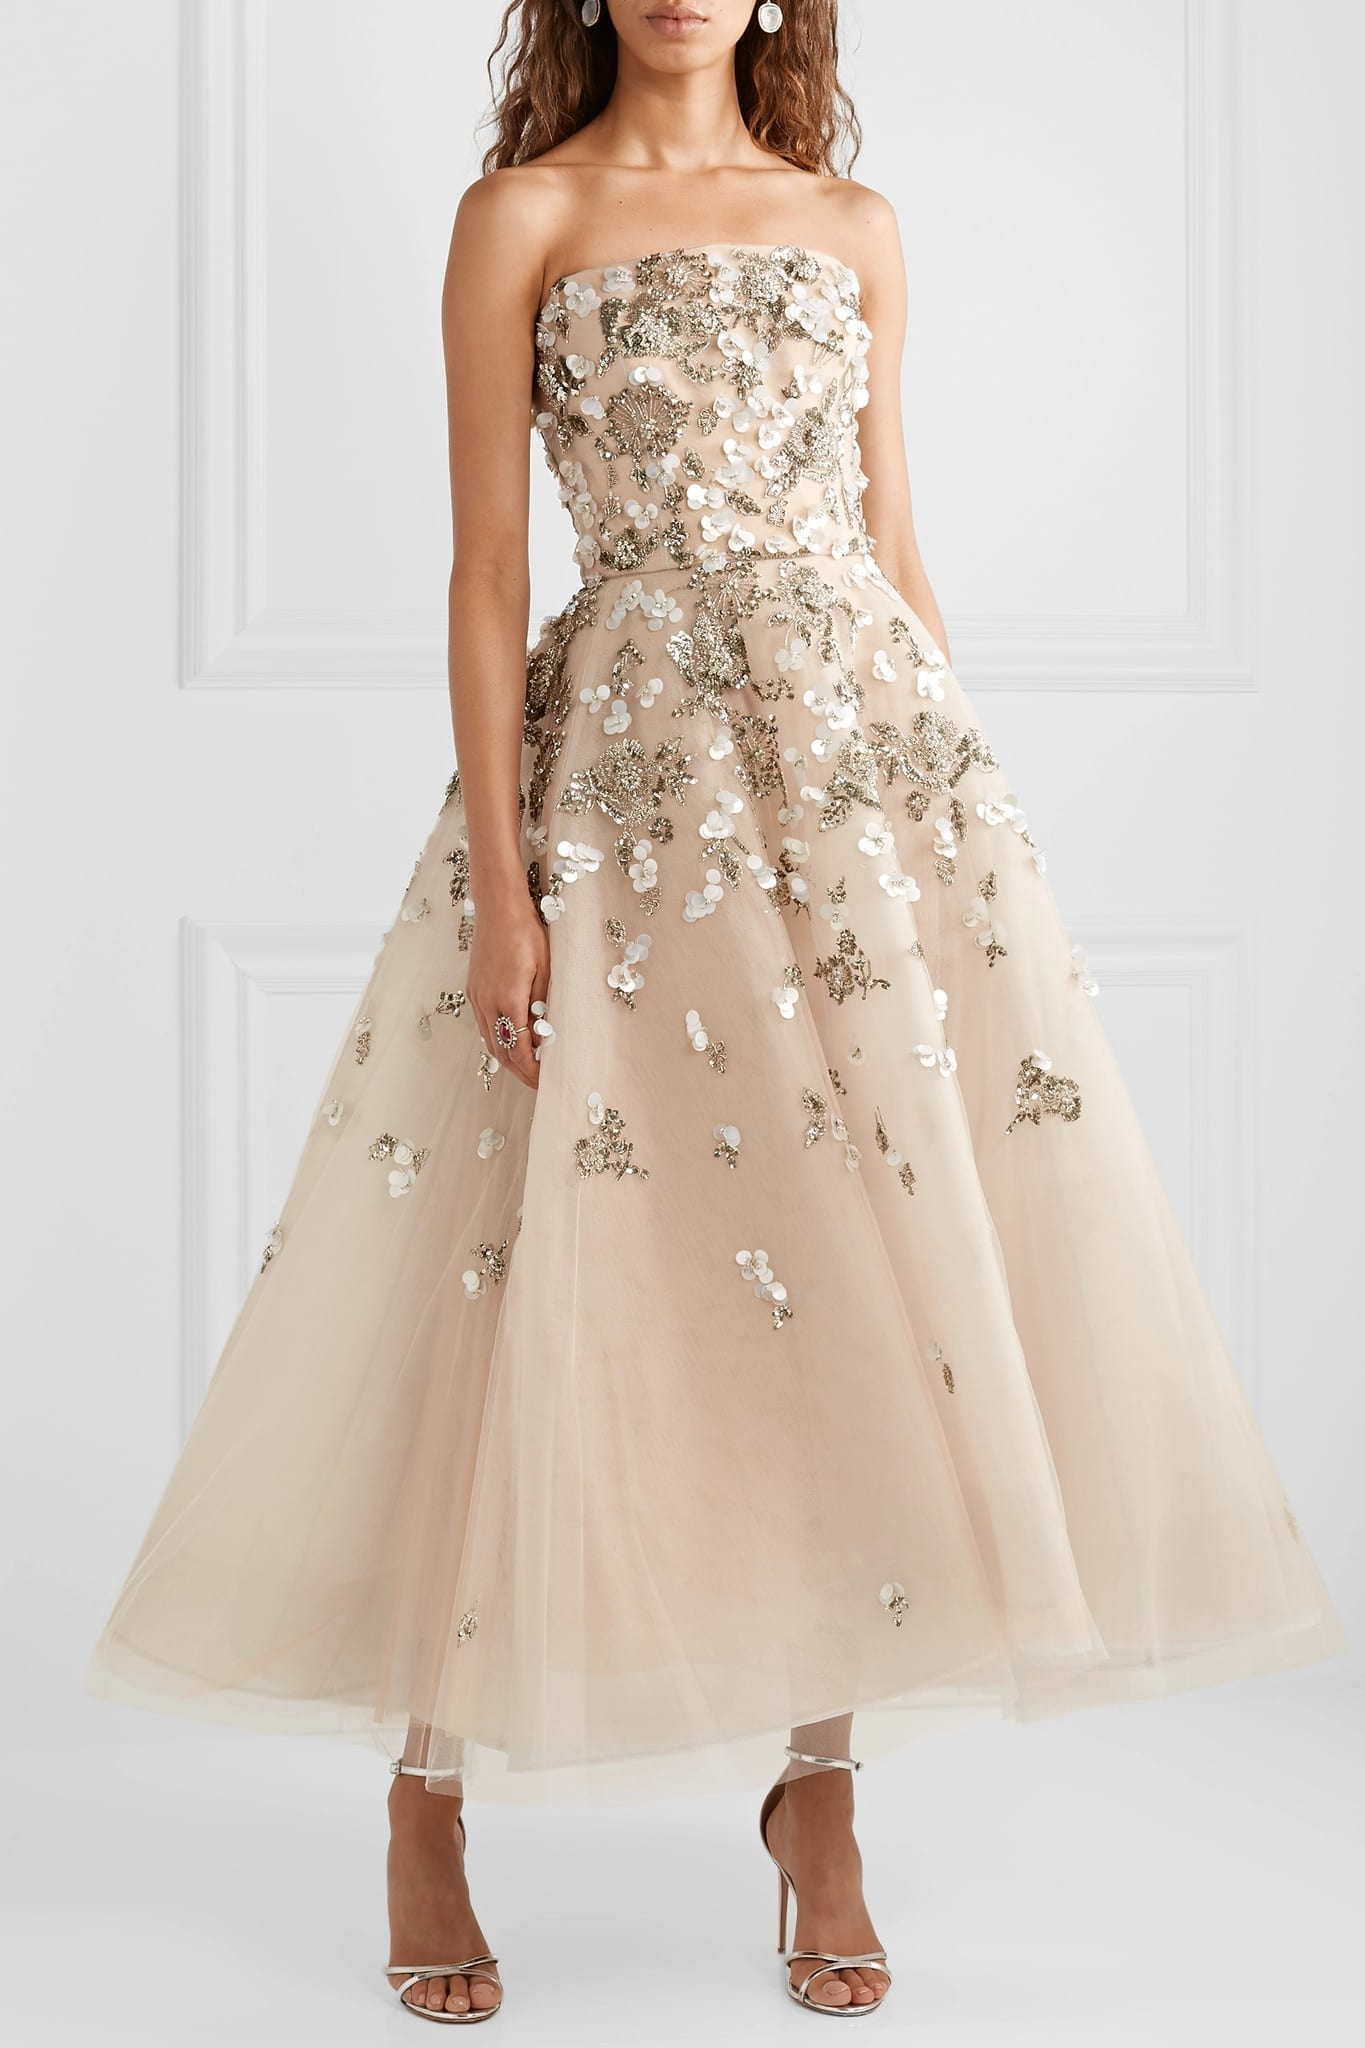 8f87b235e2 REEM ACRA Embellished Tulle Beige Gown - We Select Dresses